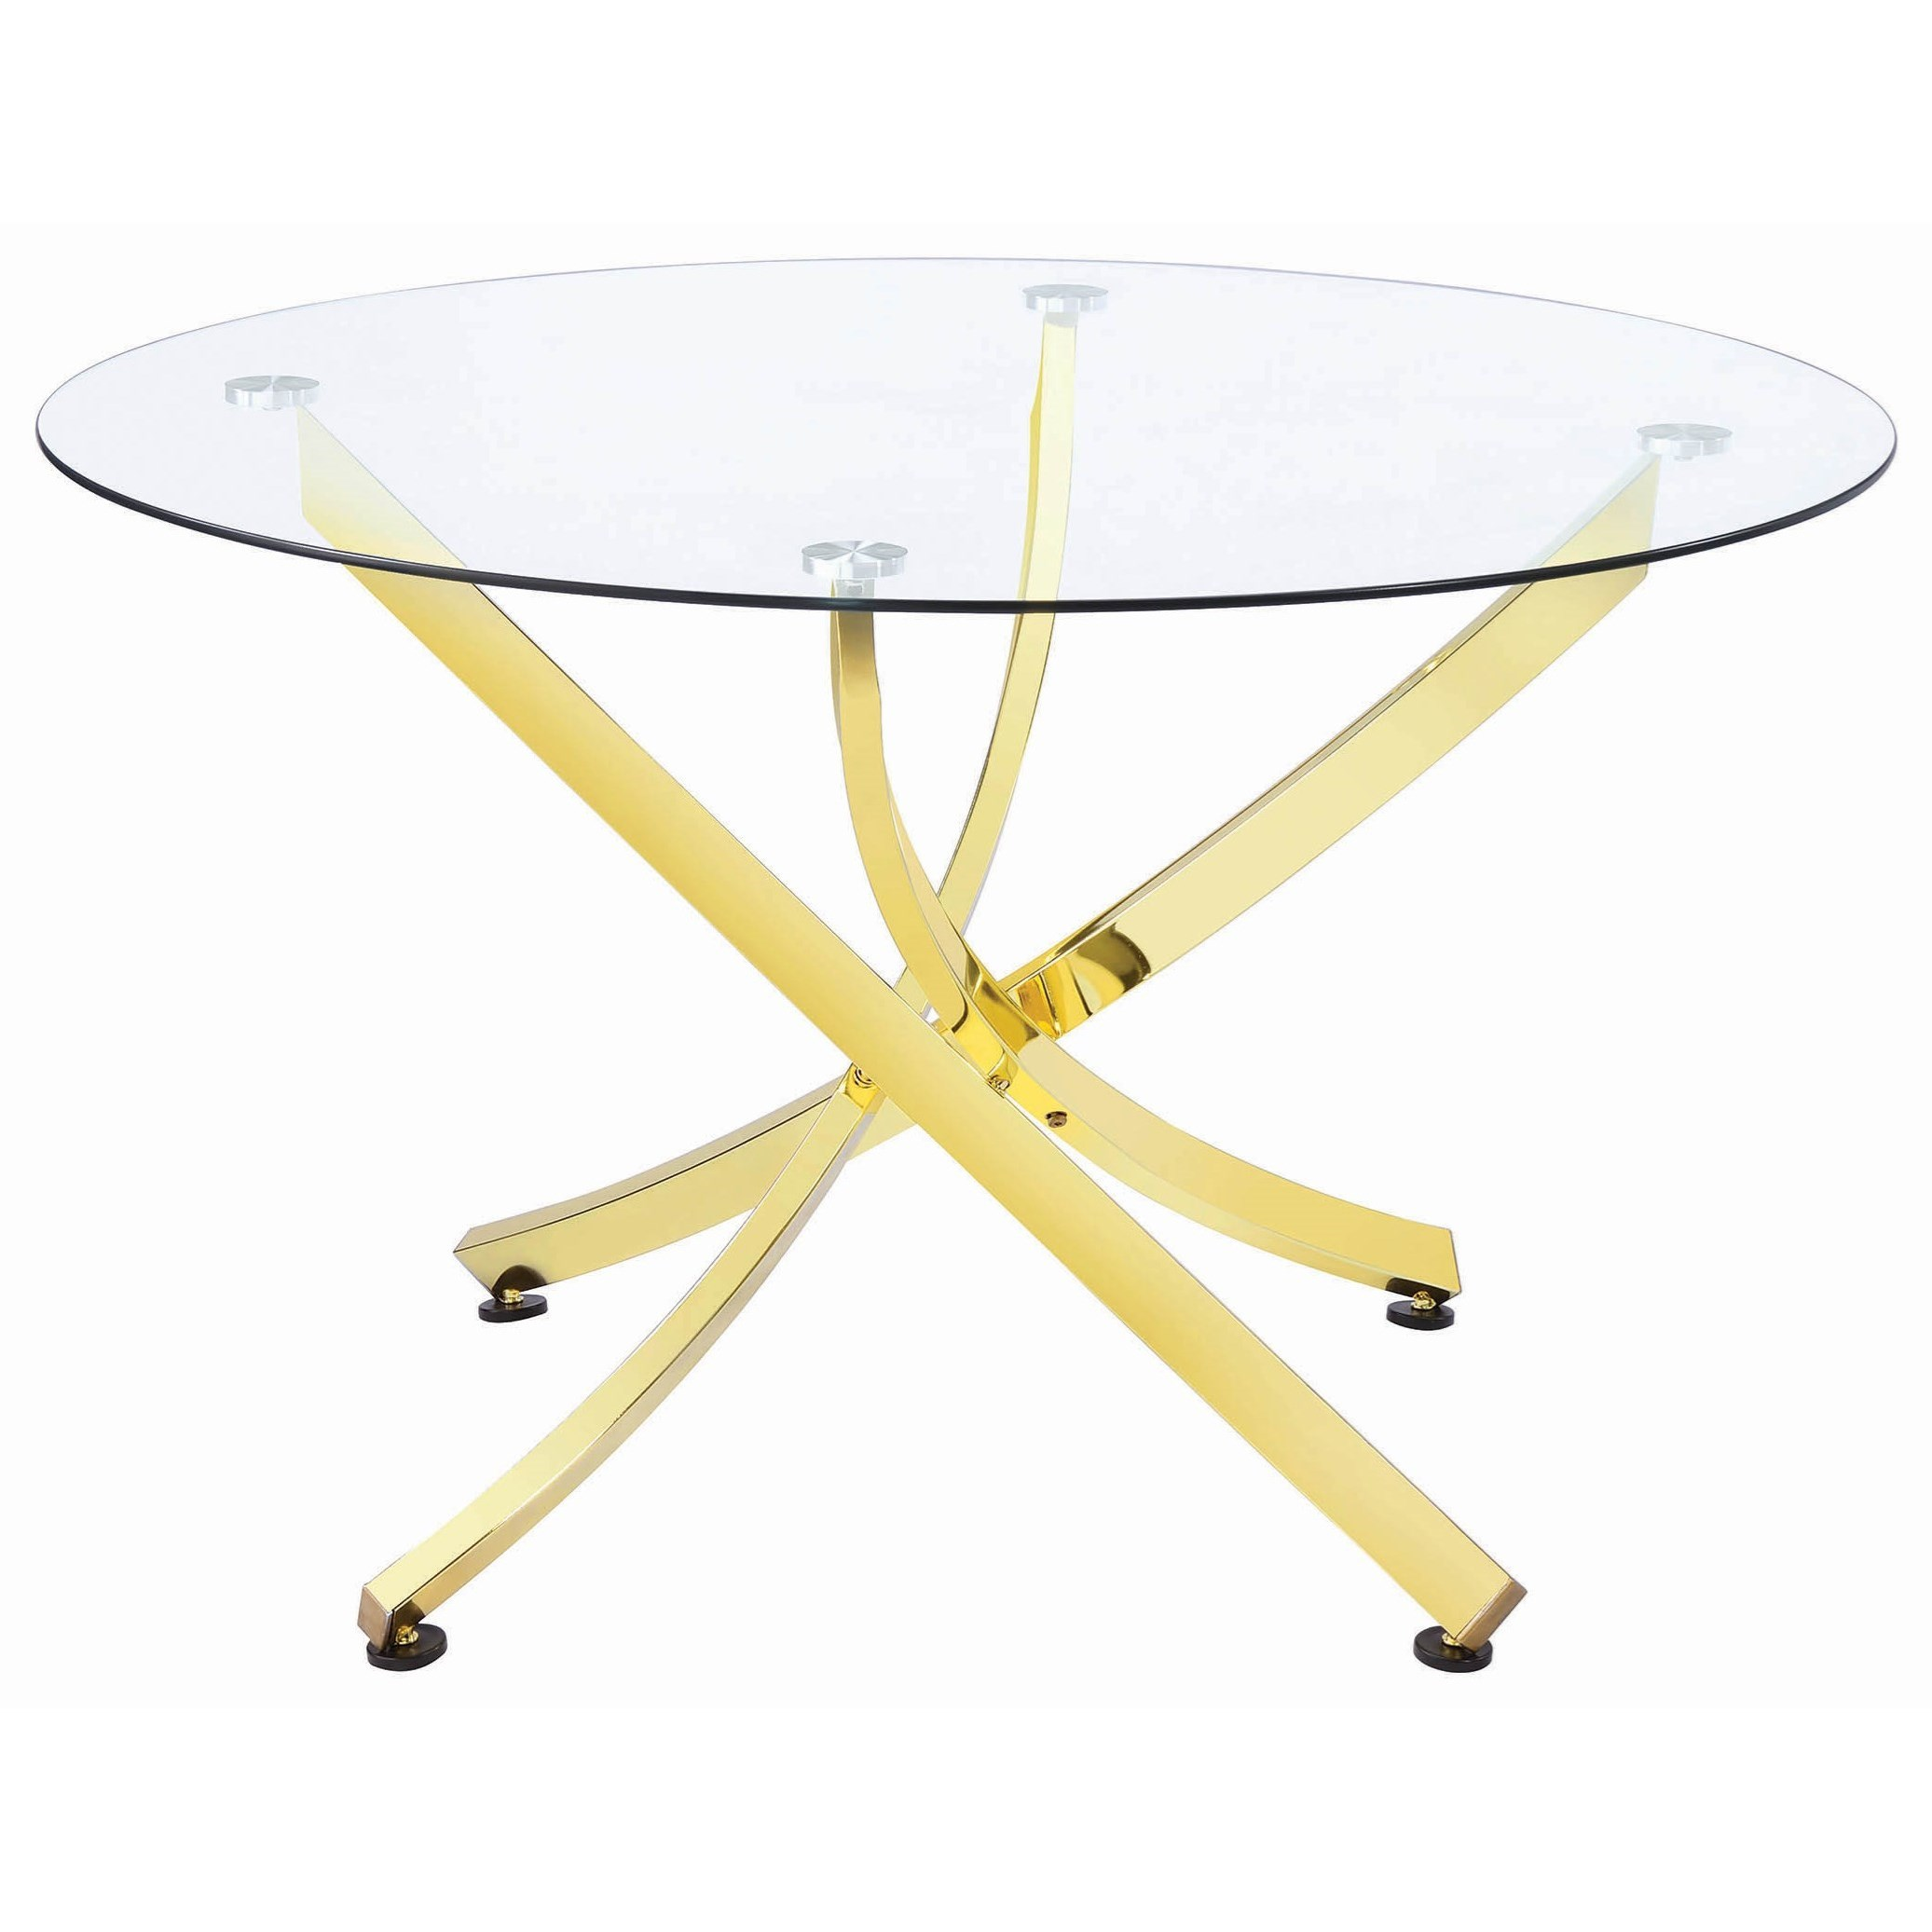 Chanel Dining Table by Coaster at Northeast Factory Direct